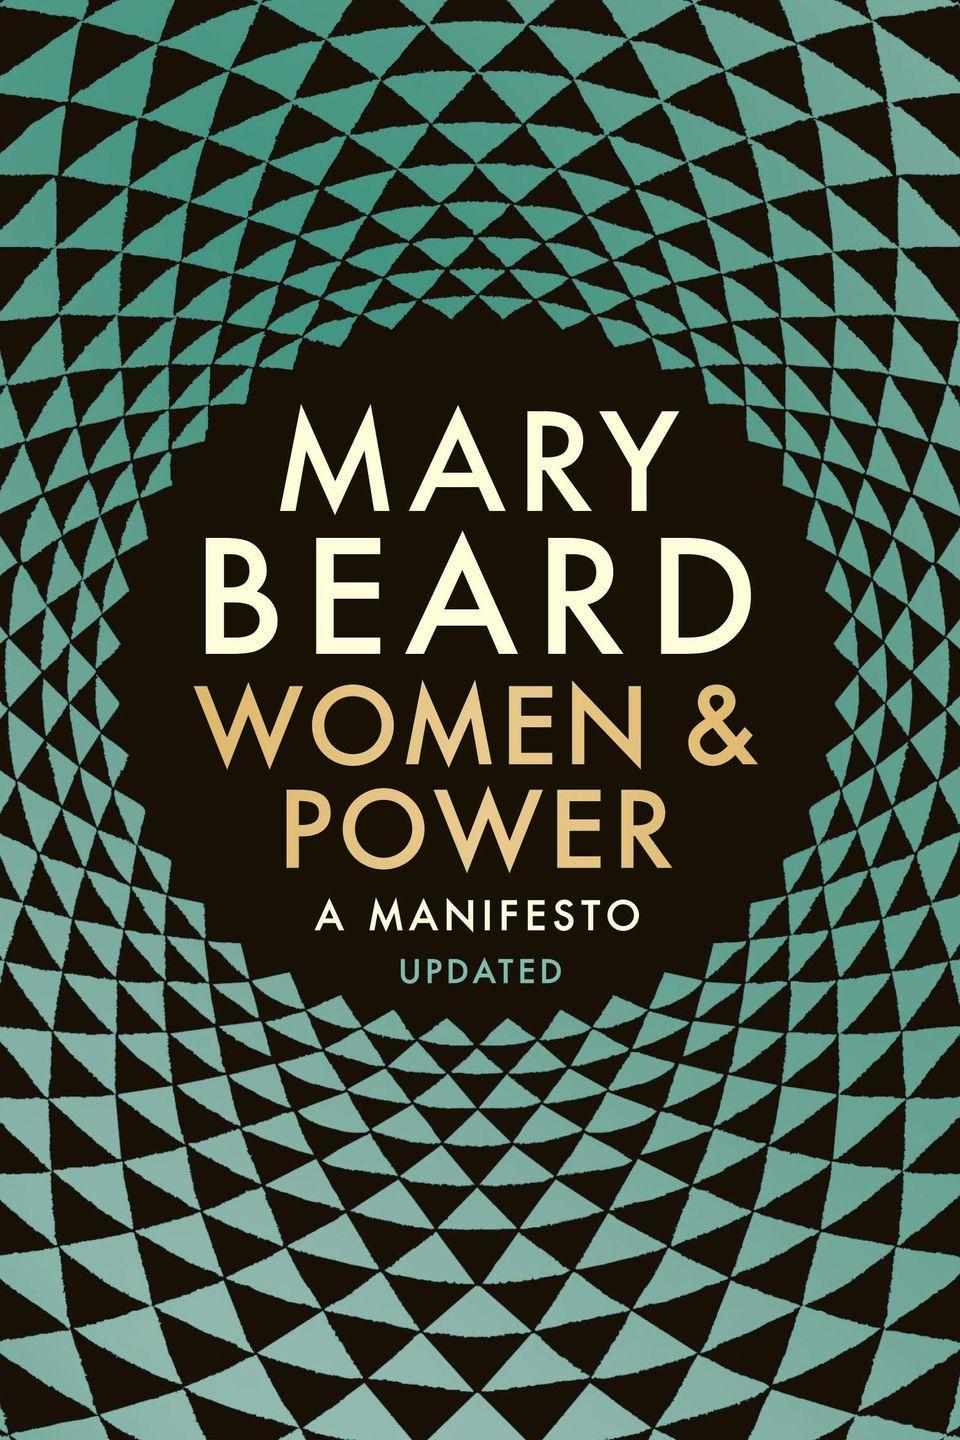 """<p><a class=""""link rapid-noclick-resp"""" href=""""https://www.amazon.co.uk/Women-Power-Professor-Mary-Beard/dp/1788160606?tag=hearstuk-yahoo-21&ascsubtag=%5Bartid%7C1927.g.35935432%5Bsrc%7Cyahoo-uk"""" rel=""""nofollow noopener"""" target=""""_blank"""" data-ylk=""""slk:SHOP NOW"""">SHOP NOW</a></p><p>This short book, adapted by two lectures, looks back across history to see how society mistreated women, and what underpins misogyny. Using ancient and modern examples, Mary Beard primarily looks at the way in which women have been and continue to be silenced and how the patriarchy has dominated civilisation for centuries. How must our power structures change for women to have equal claim to it? If all this sounds heavy, be reassured that Beard's signature wit and clarity make this a biting read. </p>"""